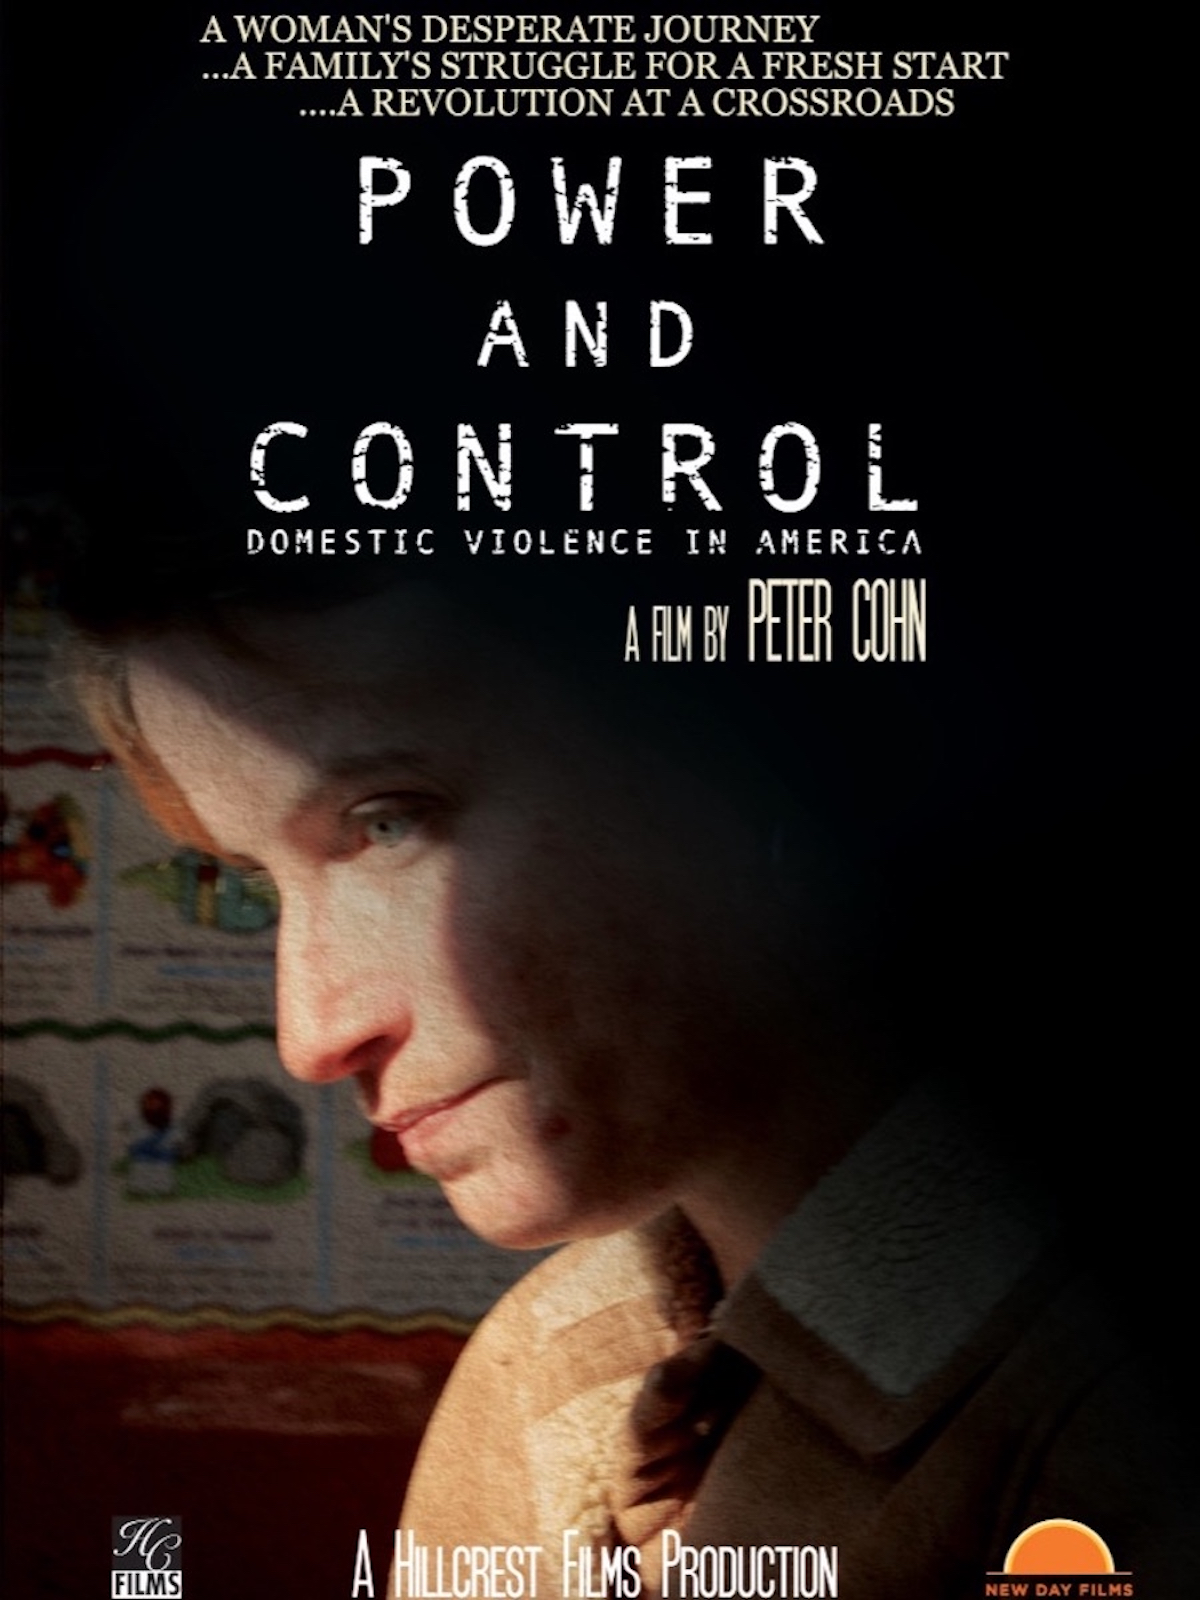 Power and Control 3X4